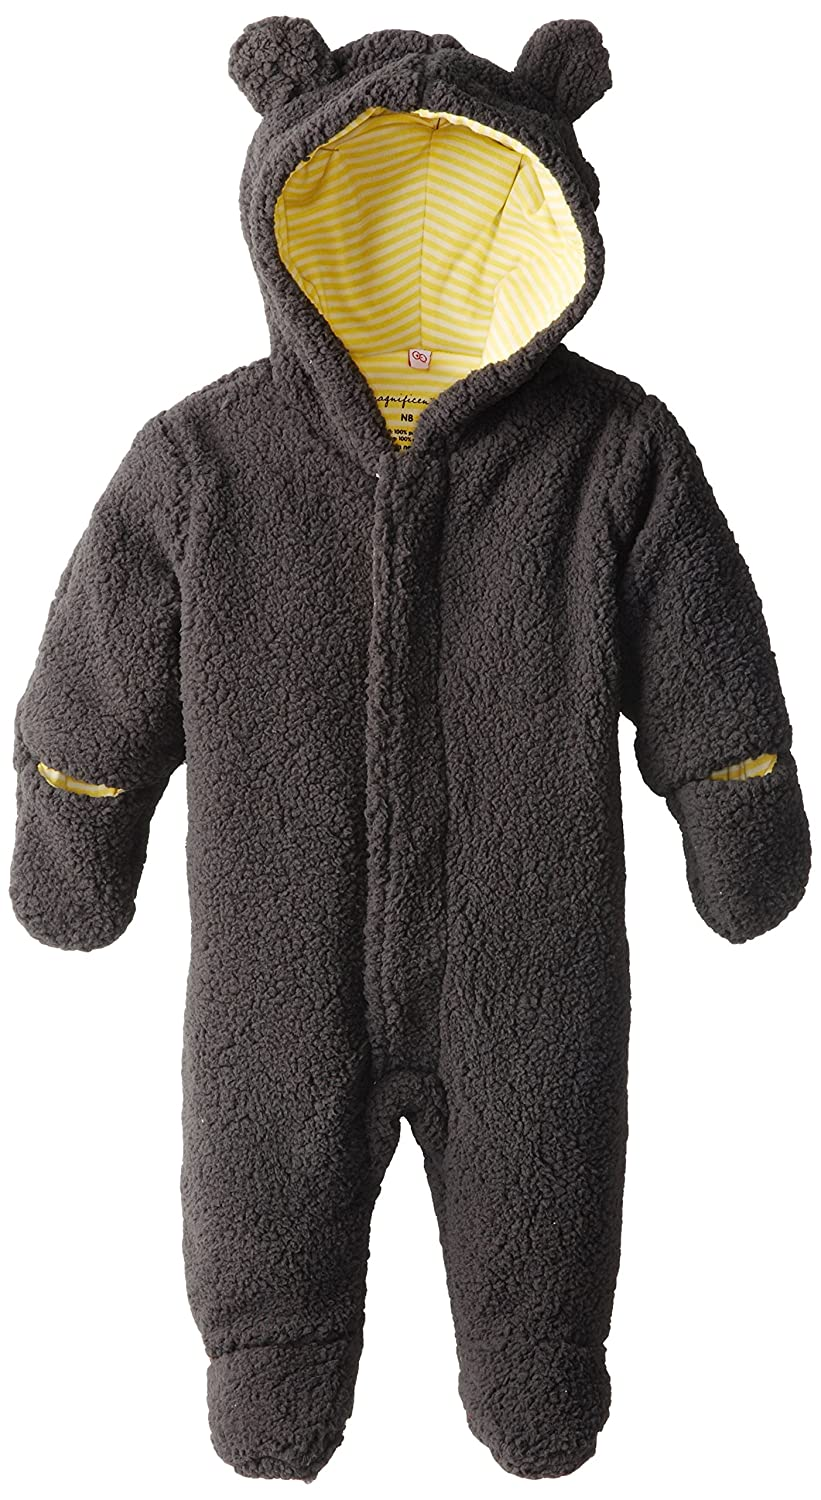 Magnificent Baby Unisex-Baby New-Born Ash Lemon Fleece Bear Pram, 3 Months 5038-U